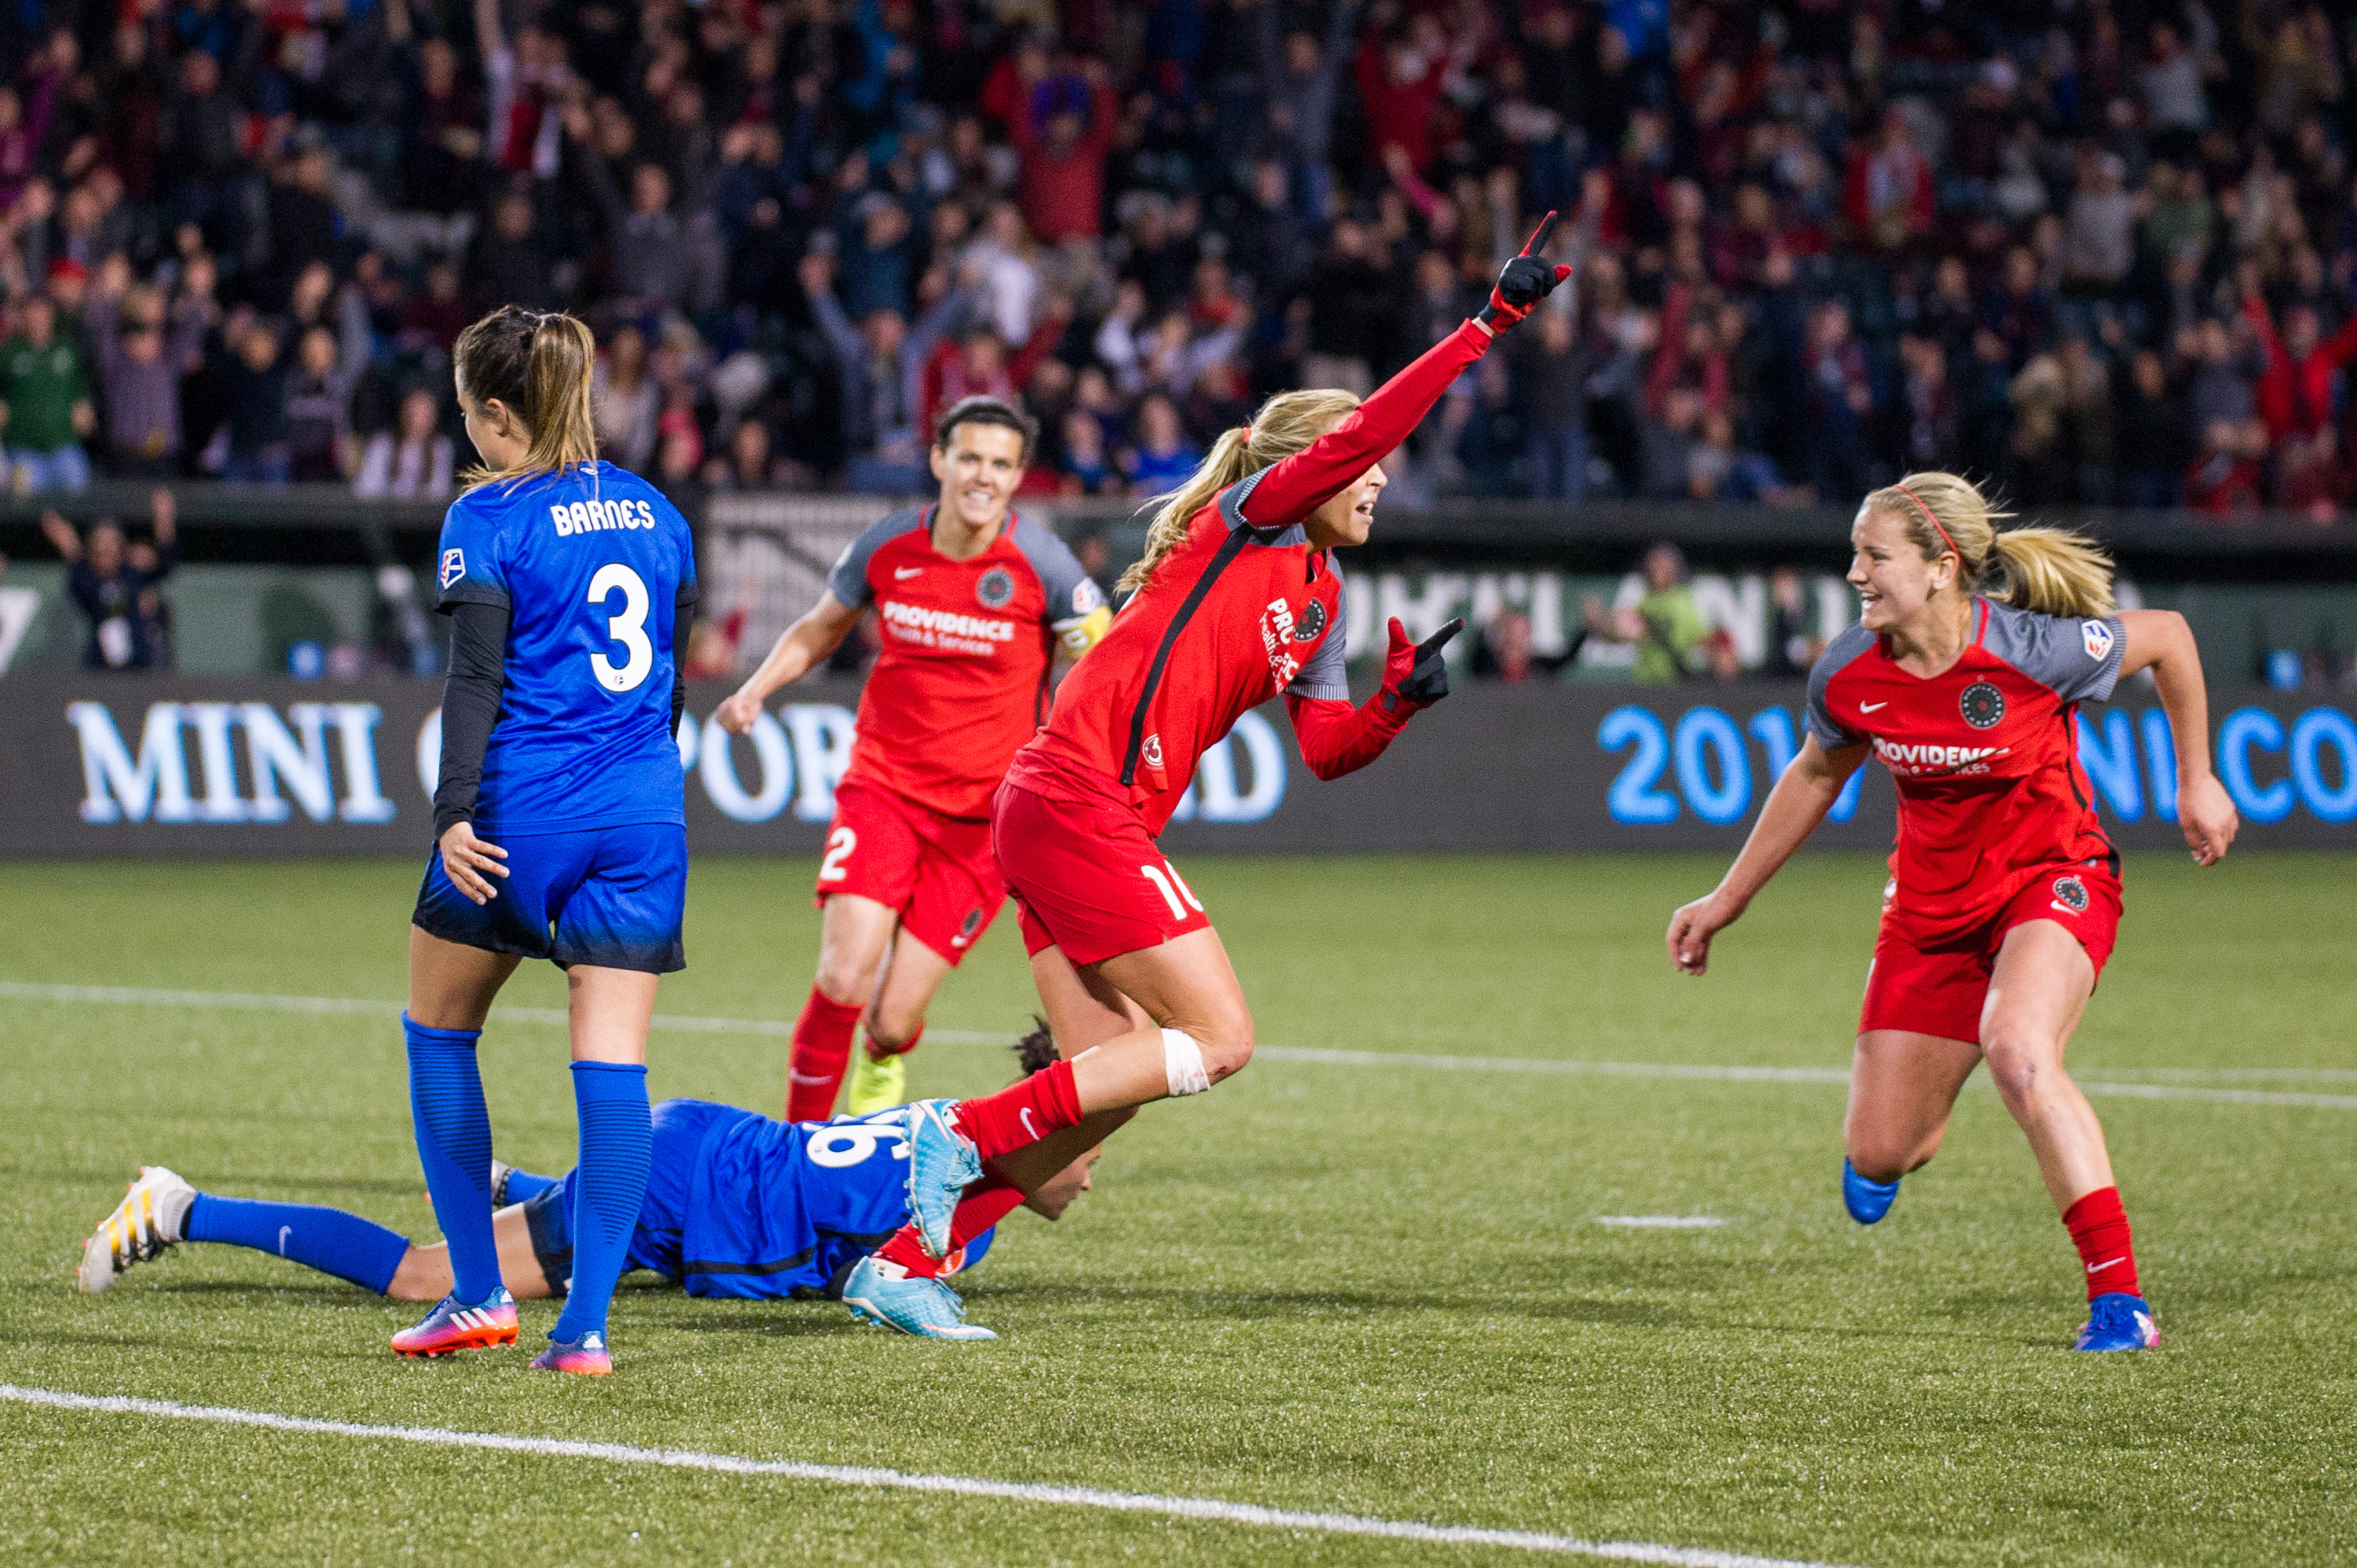 Goal by Allie Long